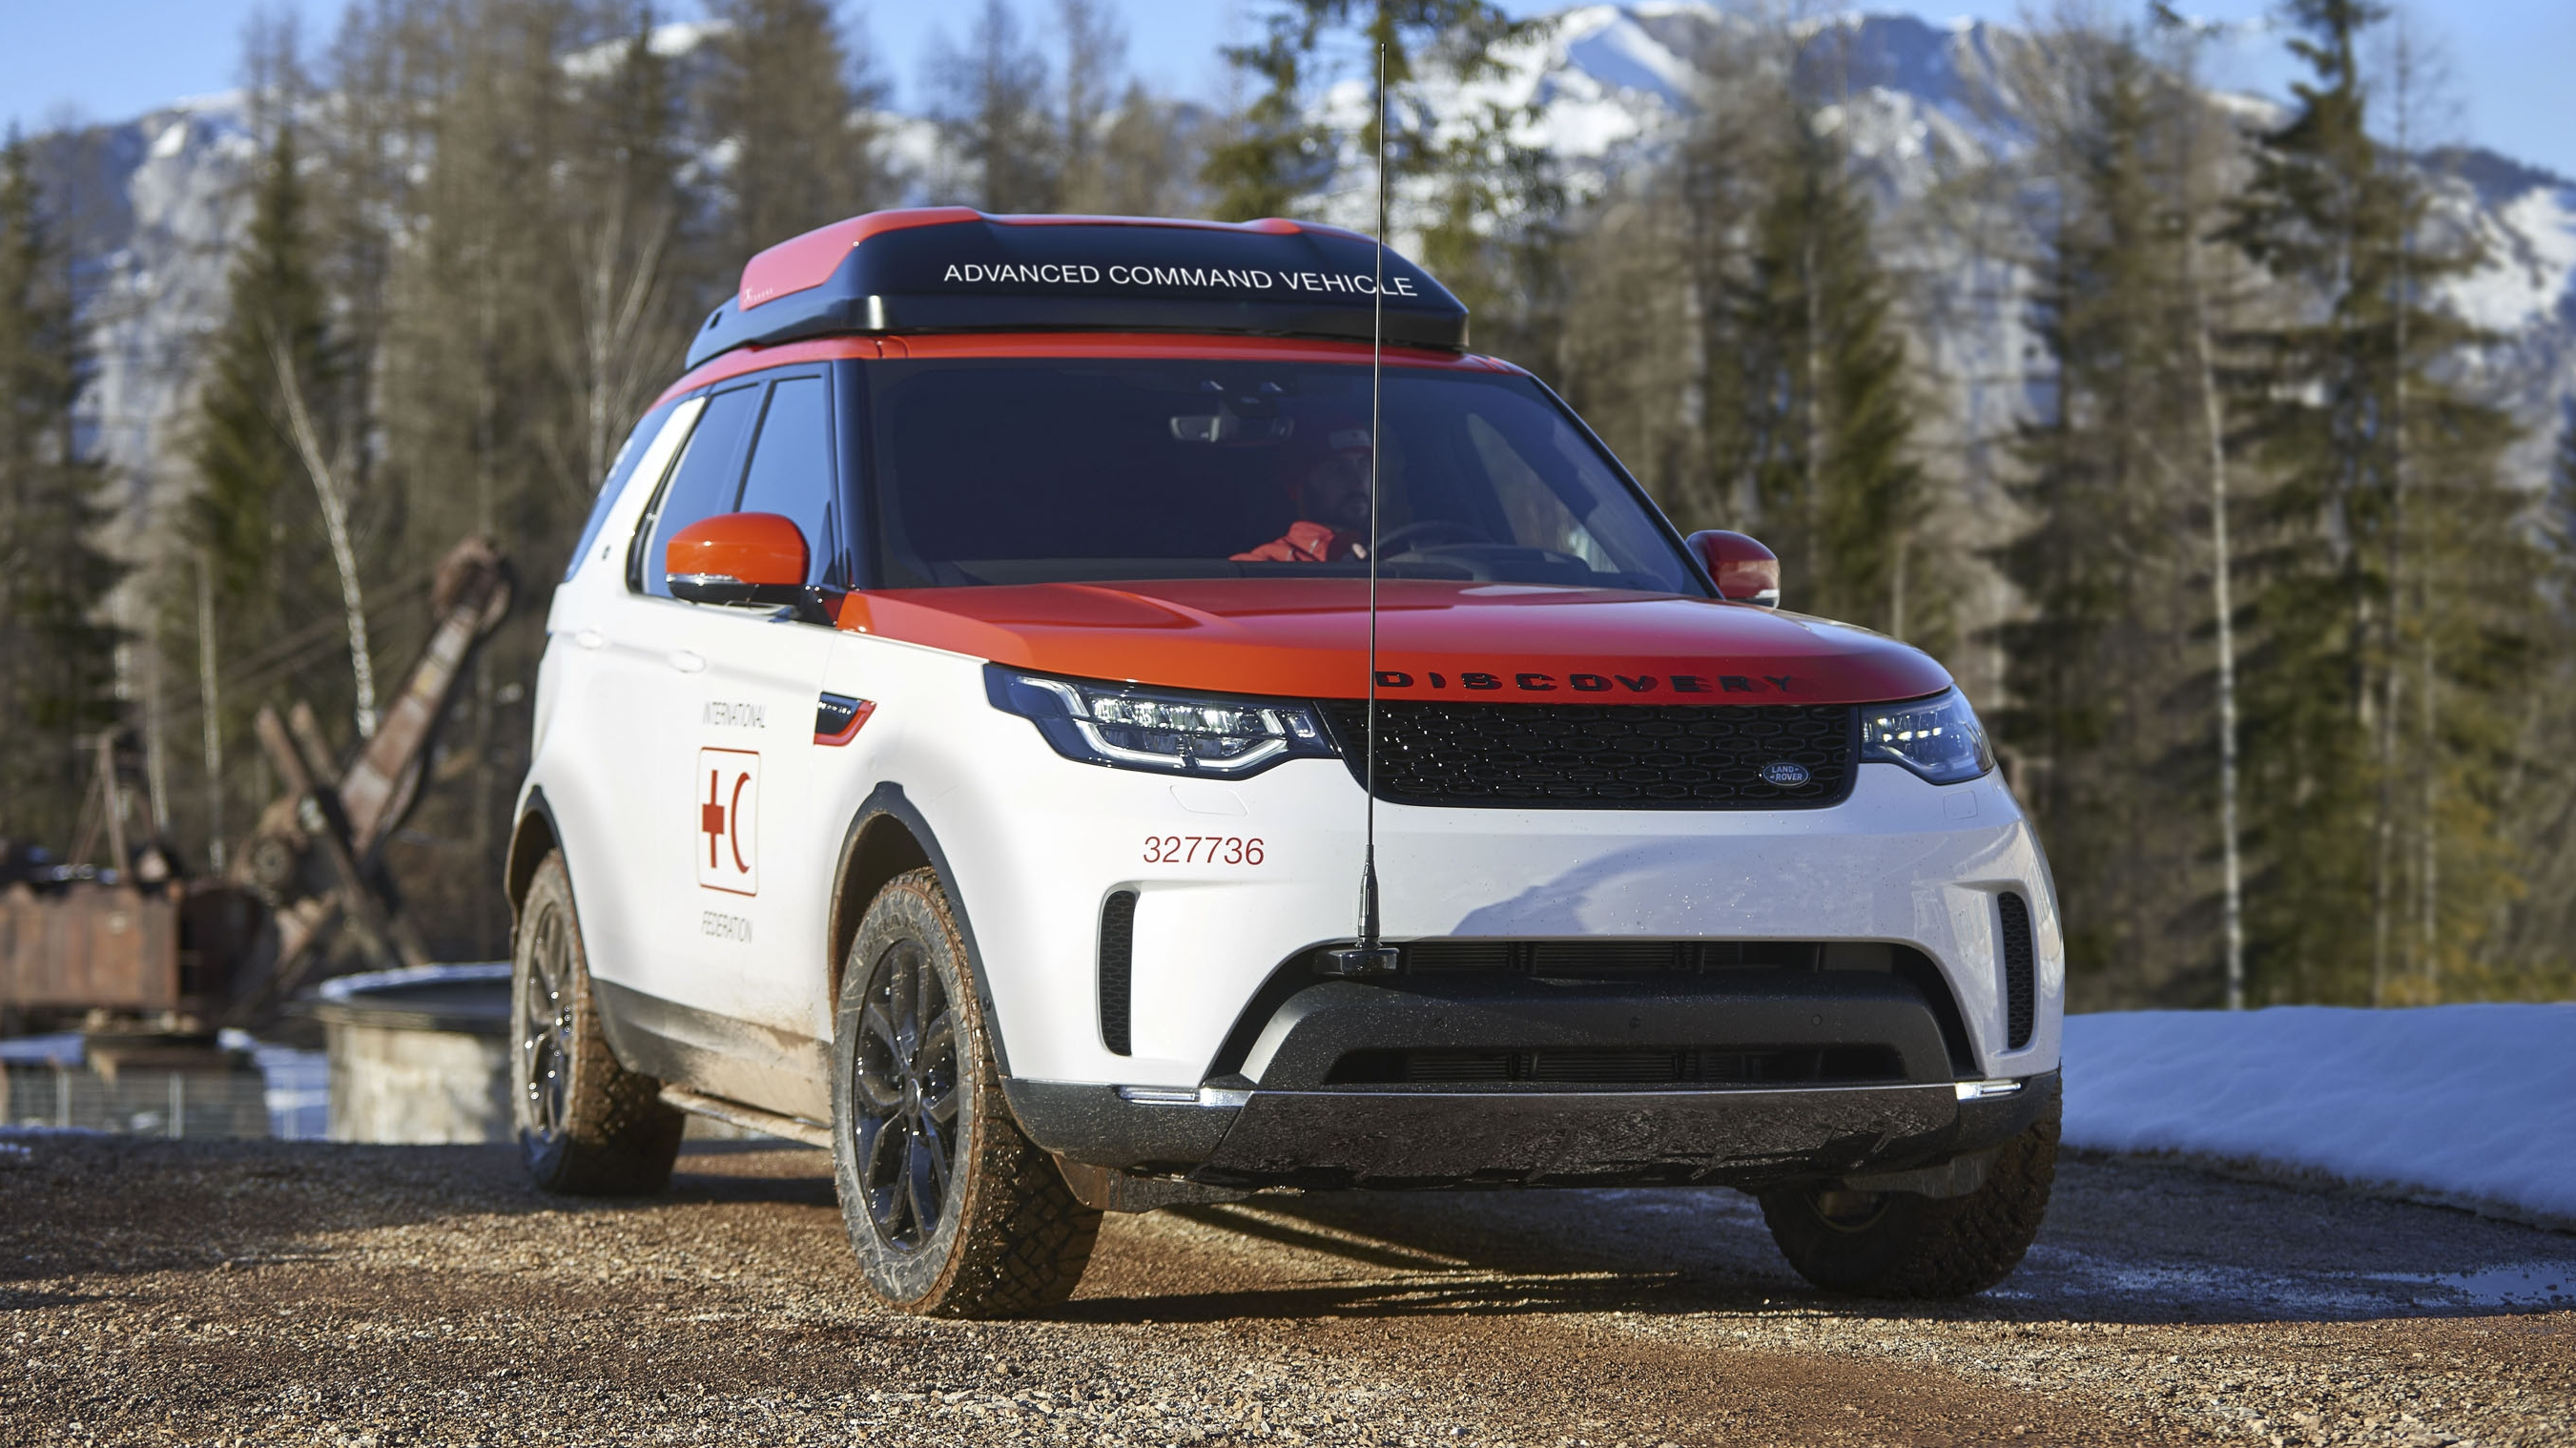 hero help landrover top speed designed cars s red land cross is project rover to car geneva news cheap